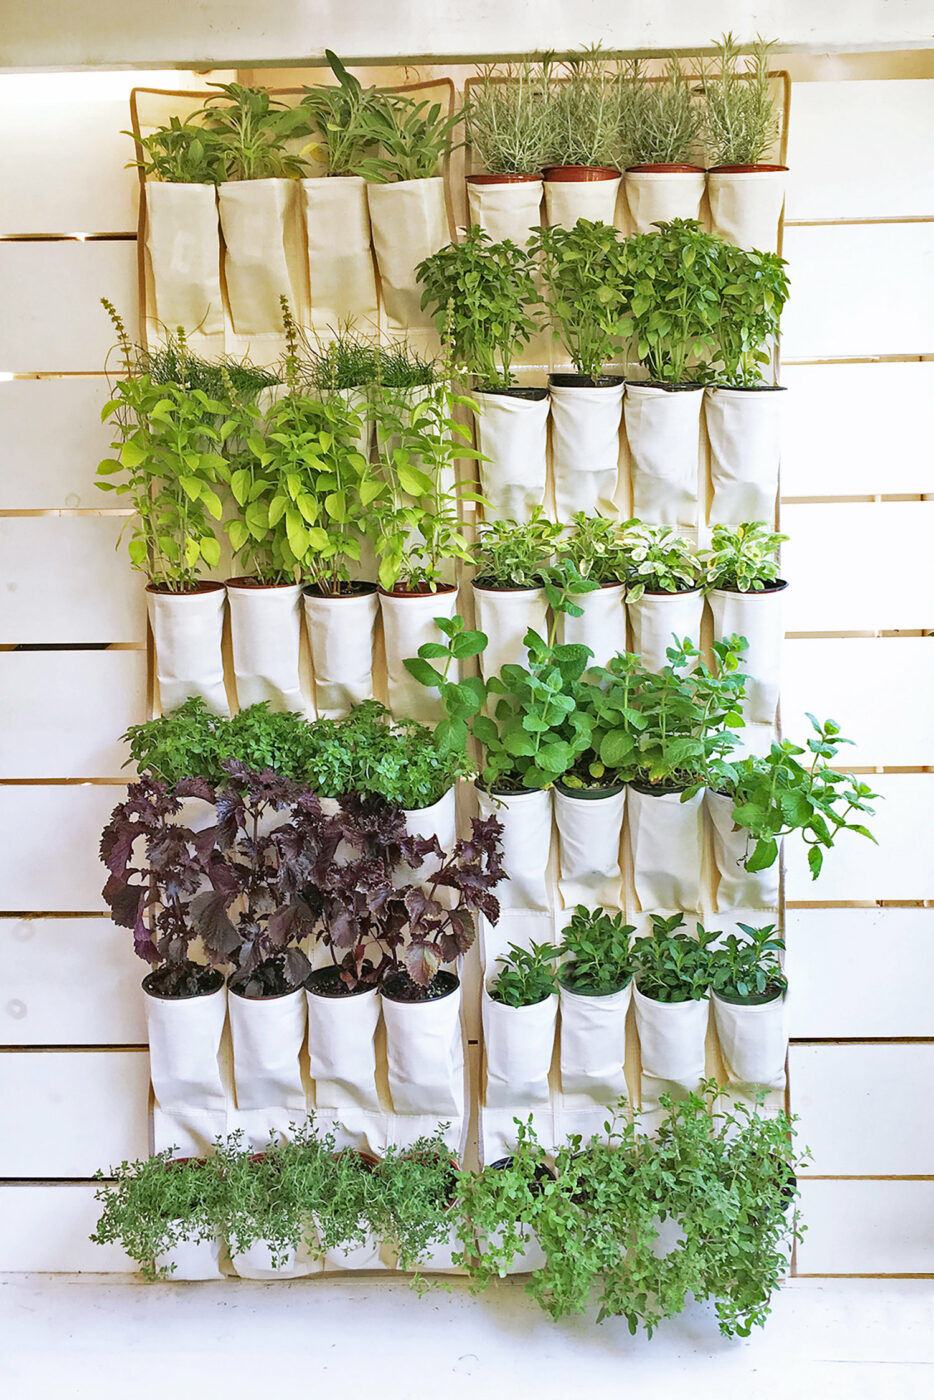 15 Brilliant DIY Herb Garden Ideas - Herb Garden Ideas, DIY Herb Garden Ideas, DIY Herb Garden, DIY Garden Ideas